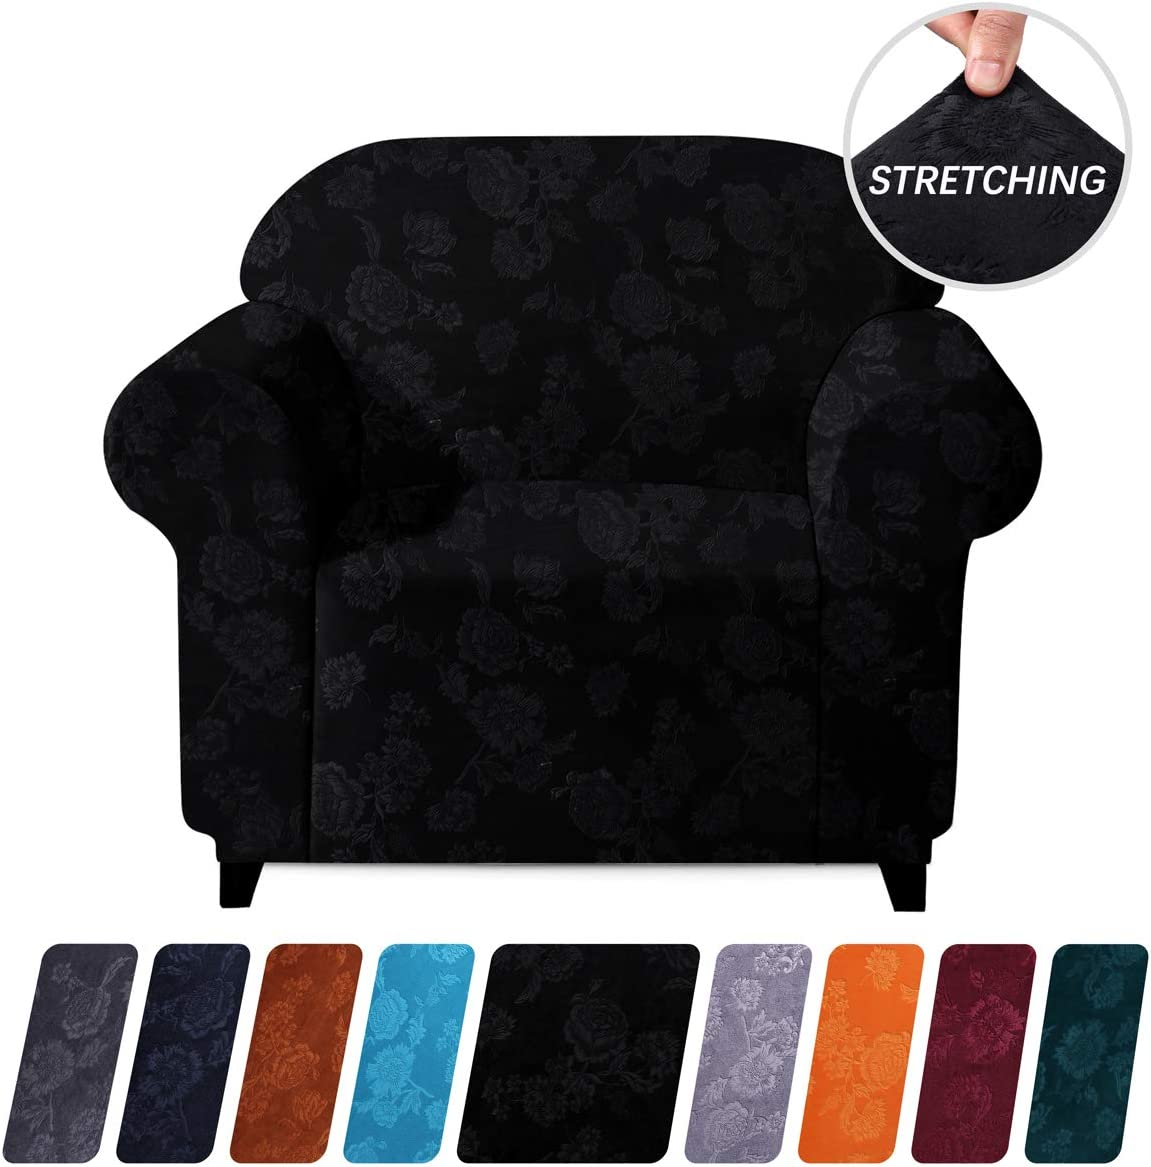 Colorxy 1-Piece Velvet Plush Stretch Sofa Cover, Machine Washable Spandex Furniture Protector, Embossing Flower Fabric Anti Slip Sofa Chair Slipcover with Elastic Bottom for Amrchair